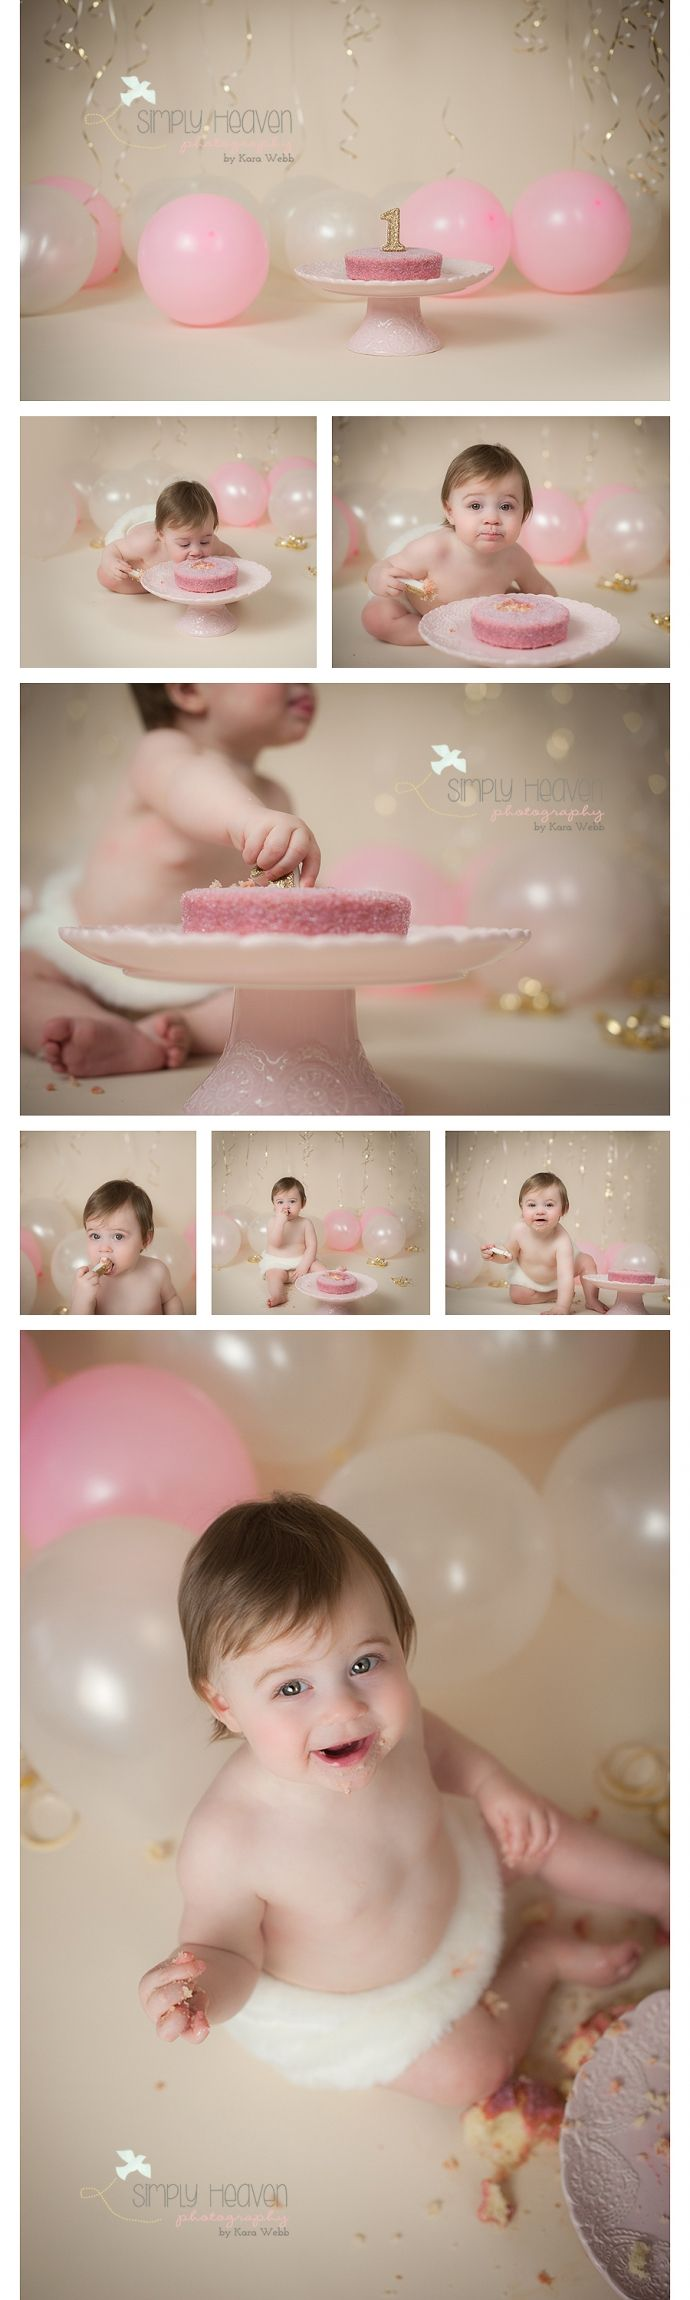 Pink, white, and gold cakesmash colors with balloons and ribbon. Love the pink sparkly cake!  Simply Heaven Photography | Raeford Baby Photographer